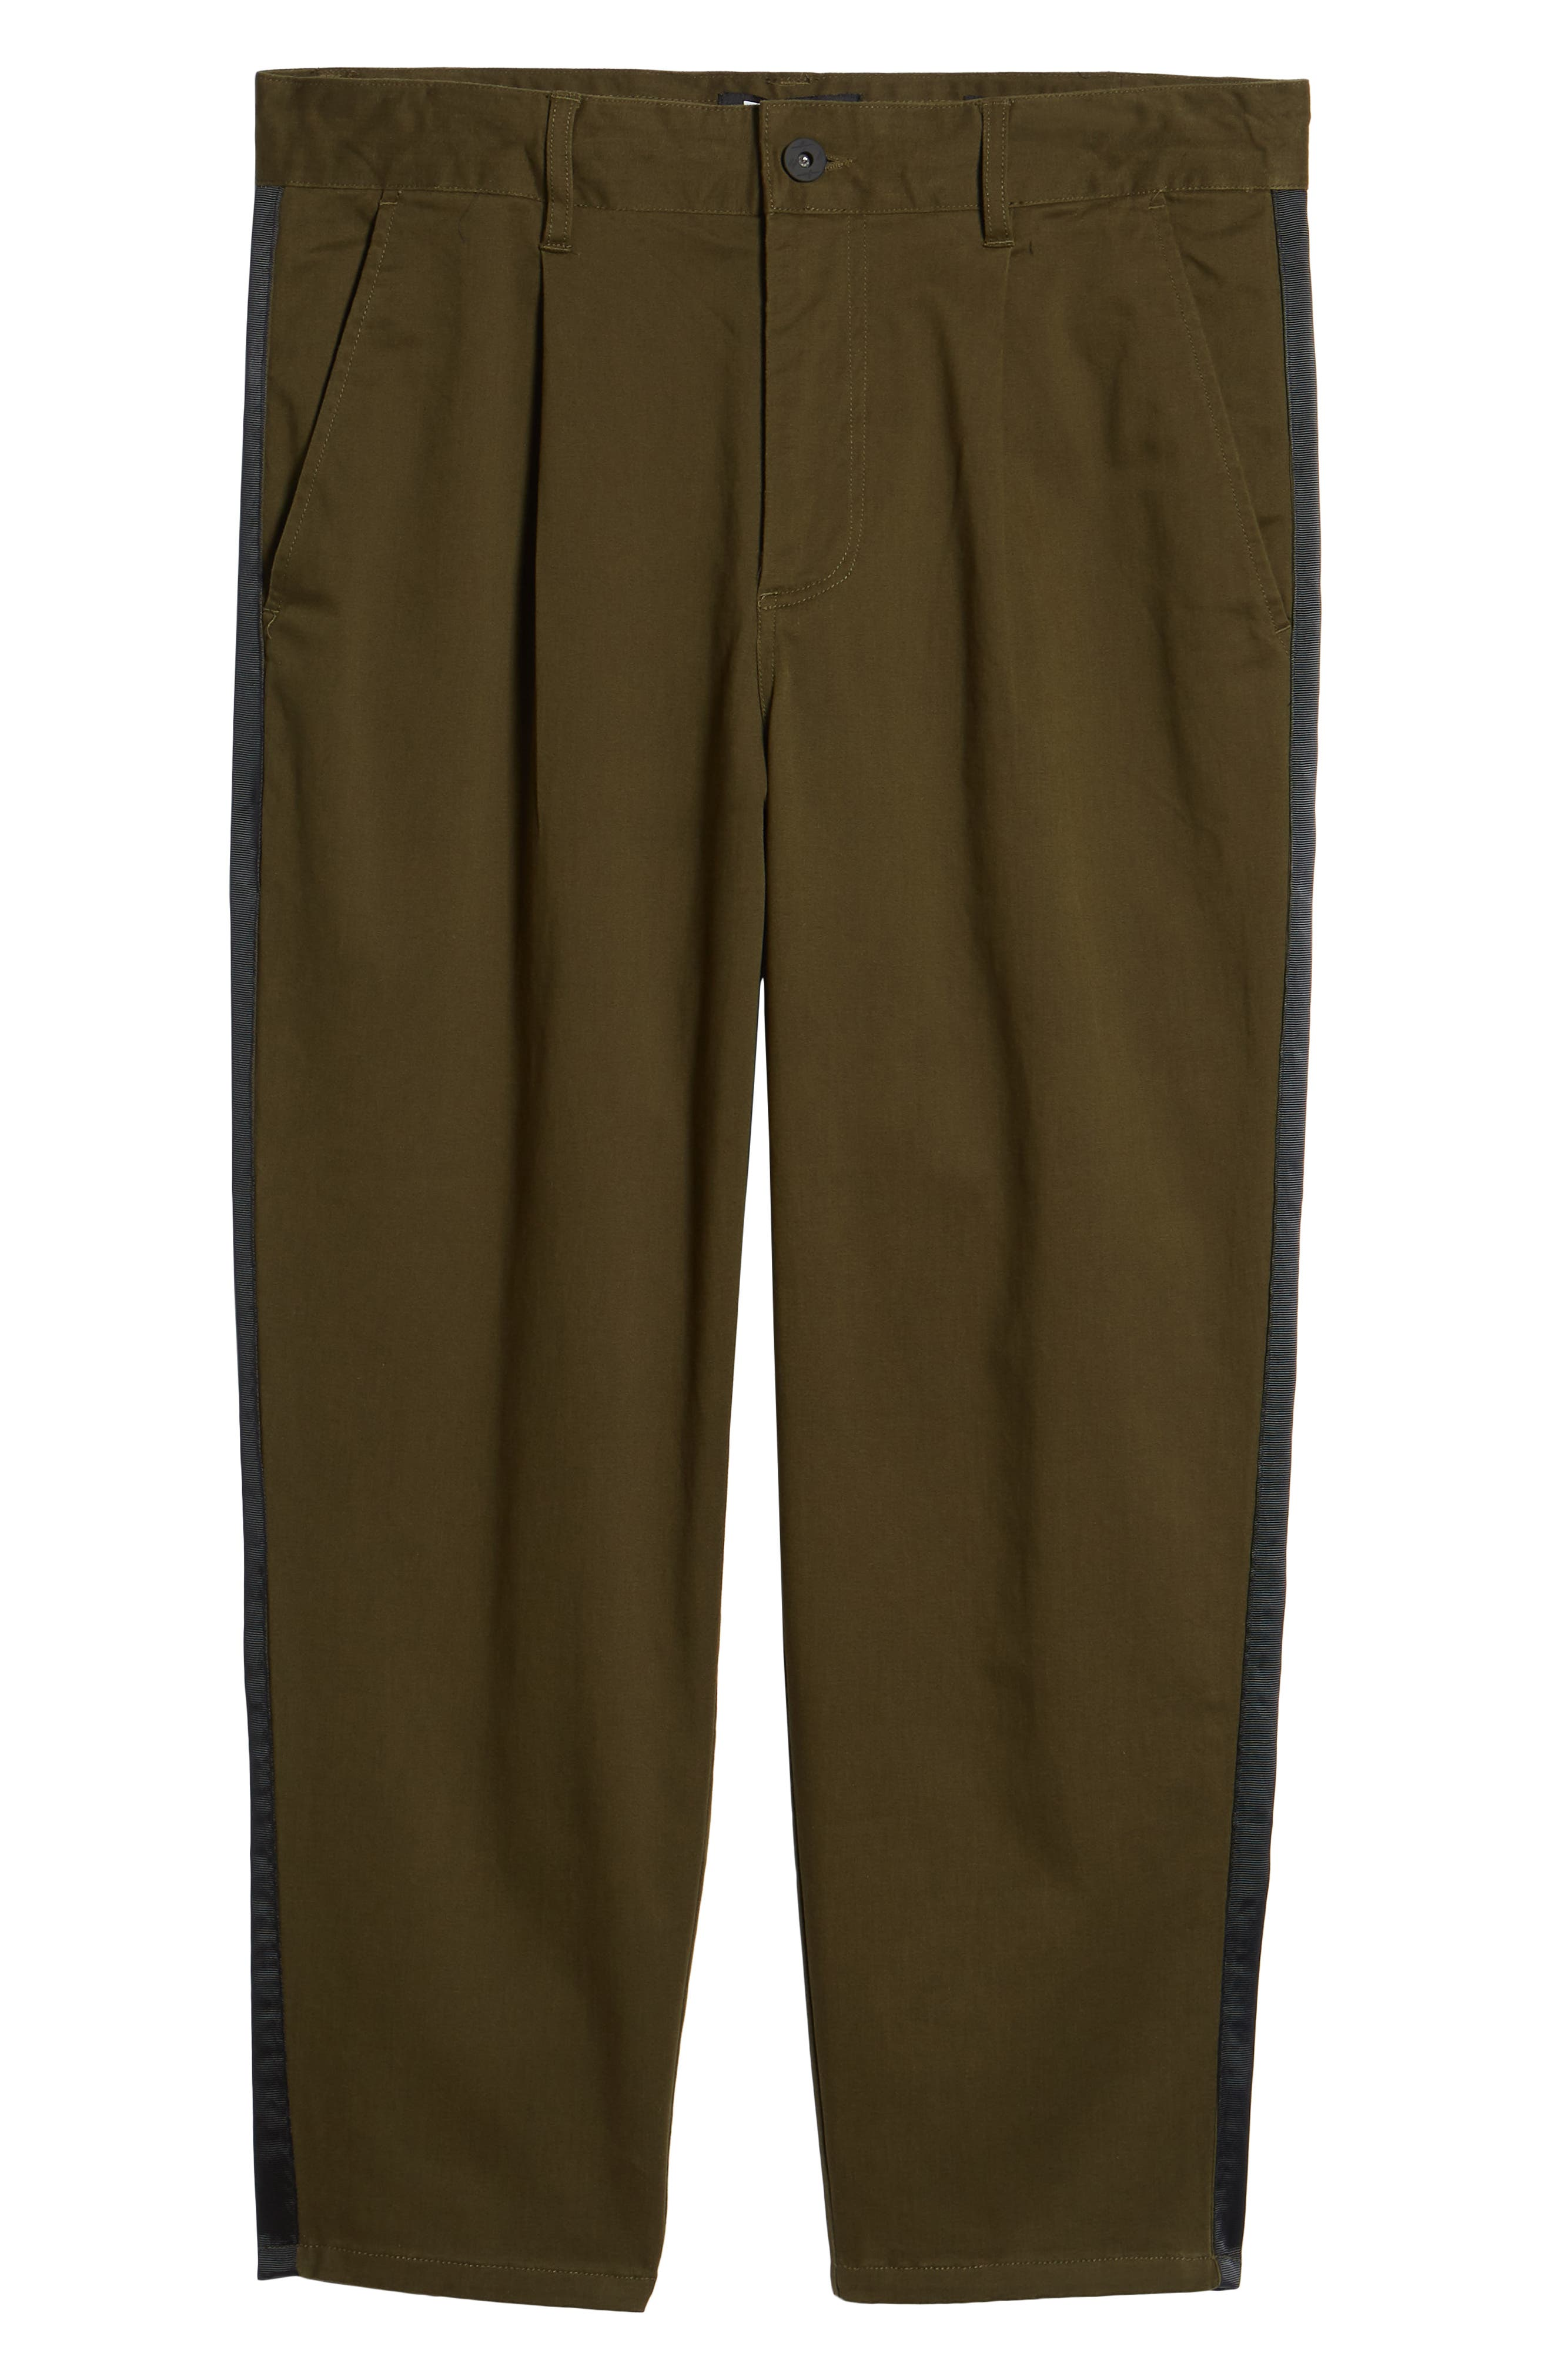 Lincoln Relaxed Fit Pants,                             Alternate thumbnail 6, color,                             300